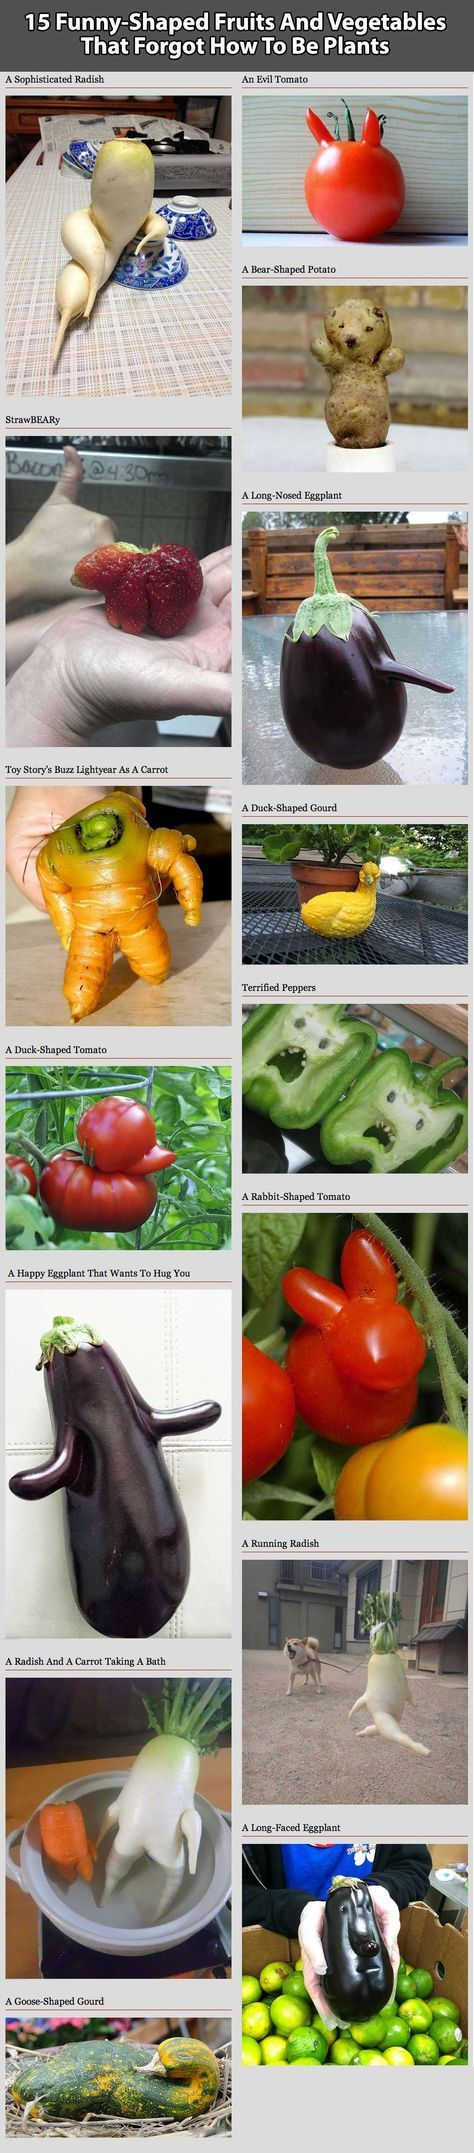 15 best funny images on pinterest fruits and vegetables veggies